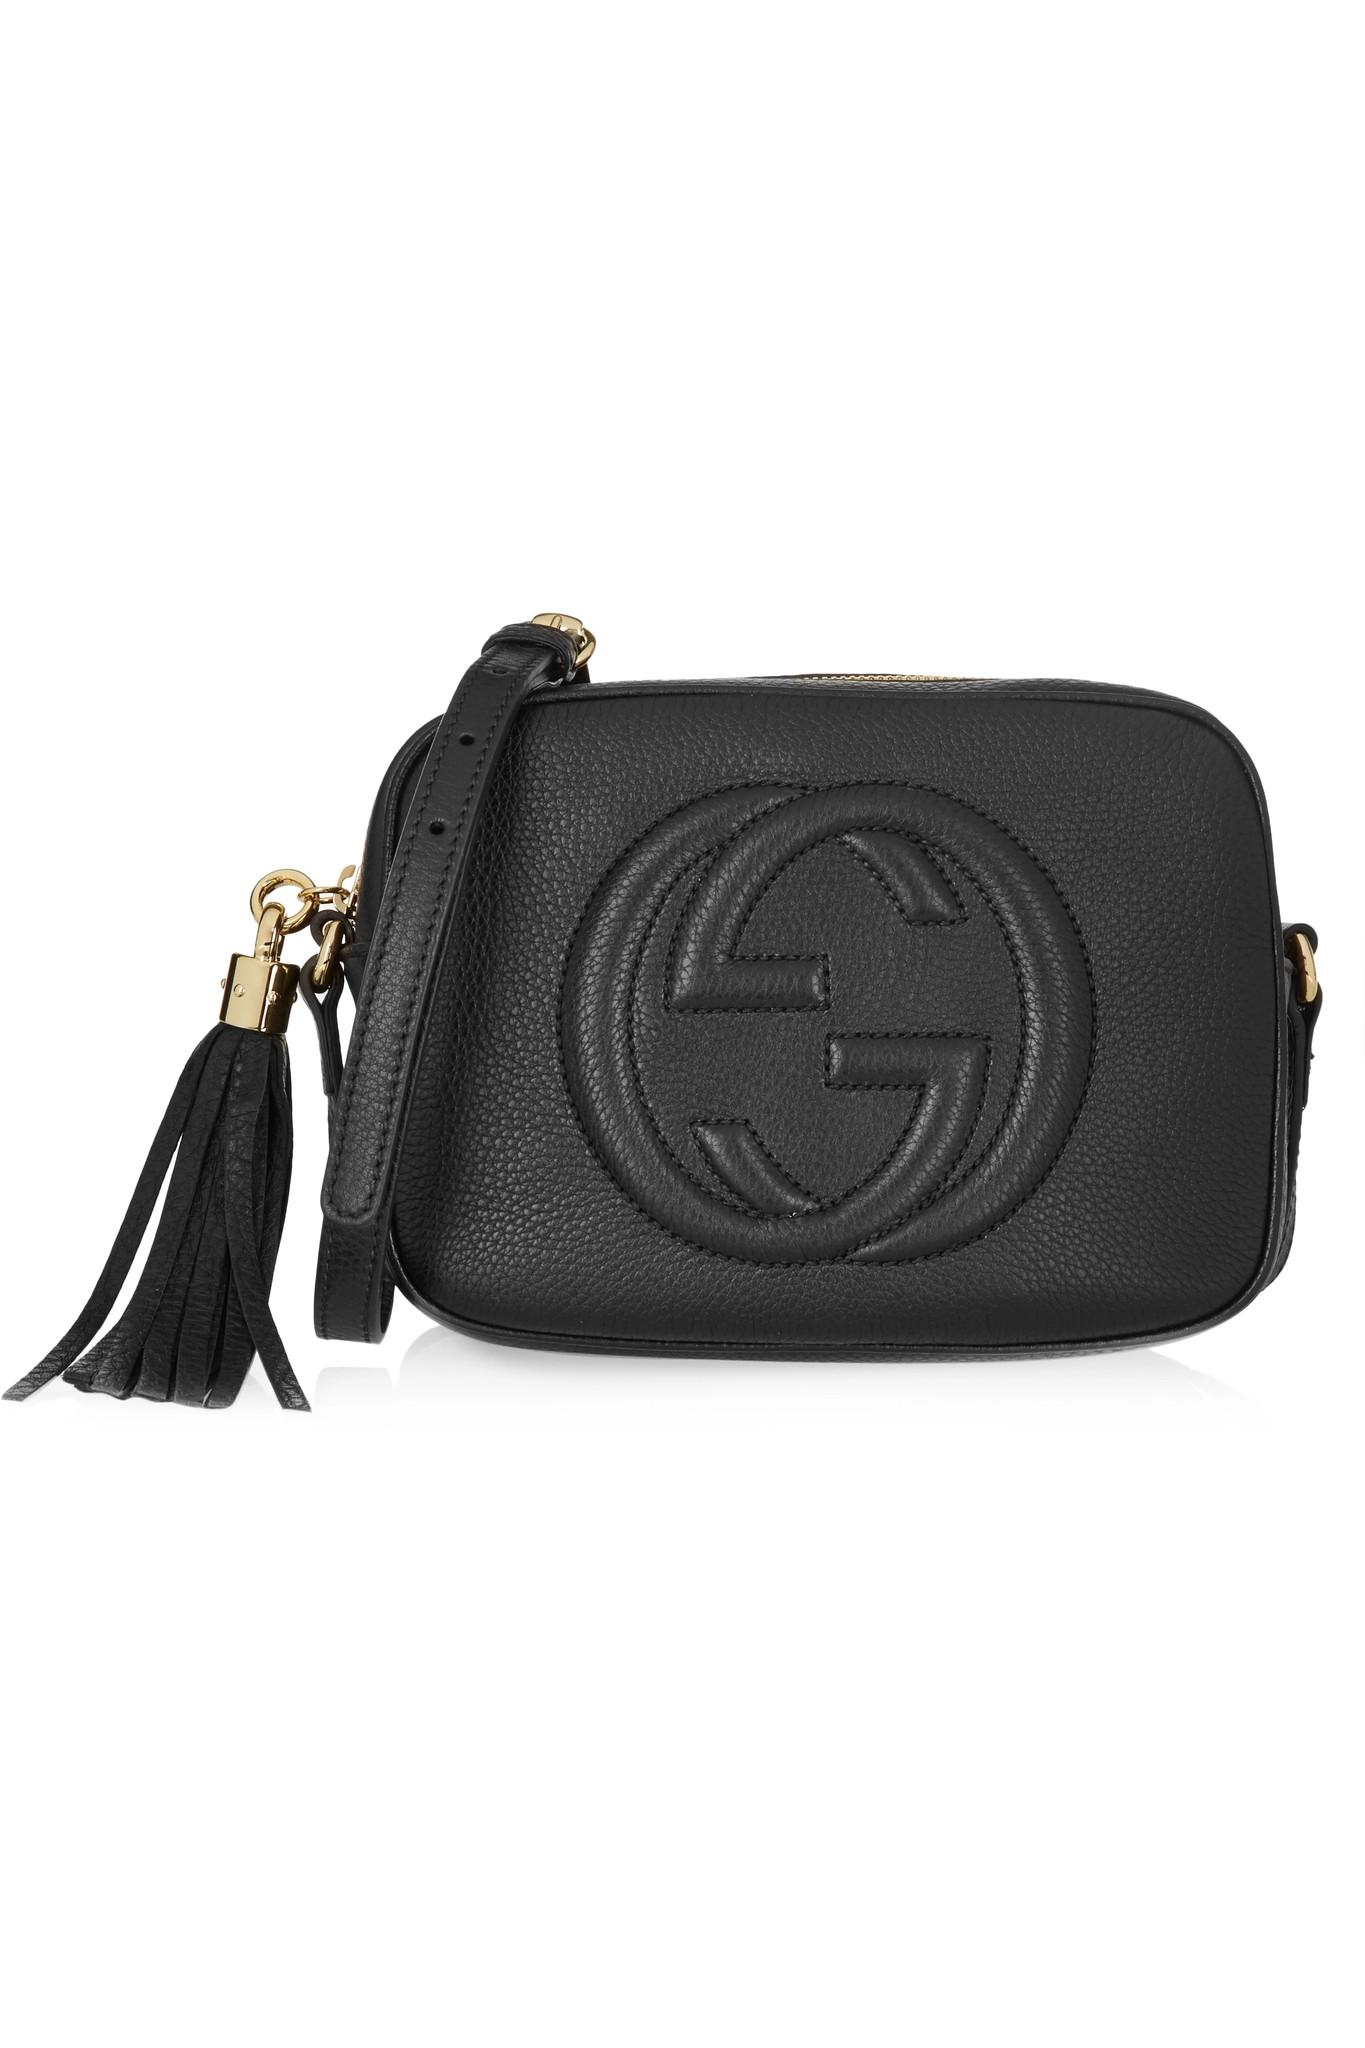 fd68299fcd05 Gucci Soho Disco Textured-leather Shoulder Bag in Black - Lyst